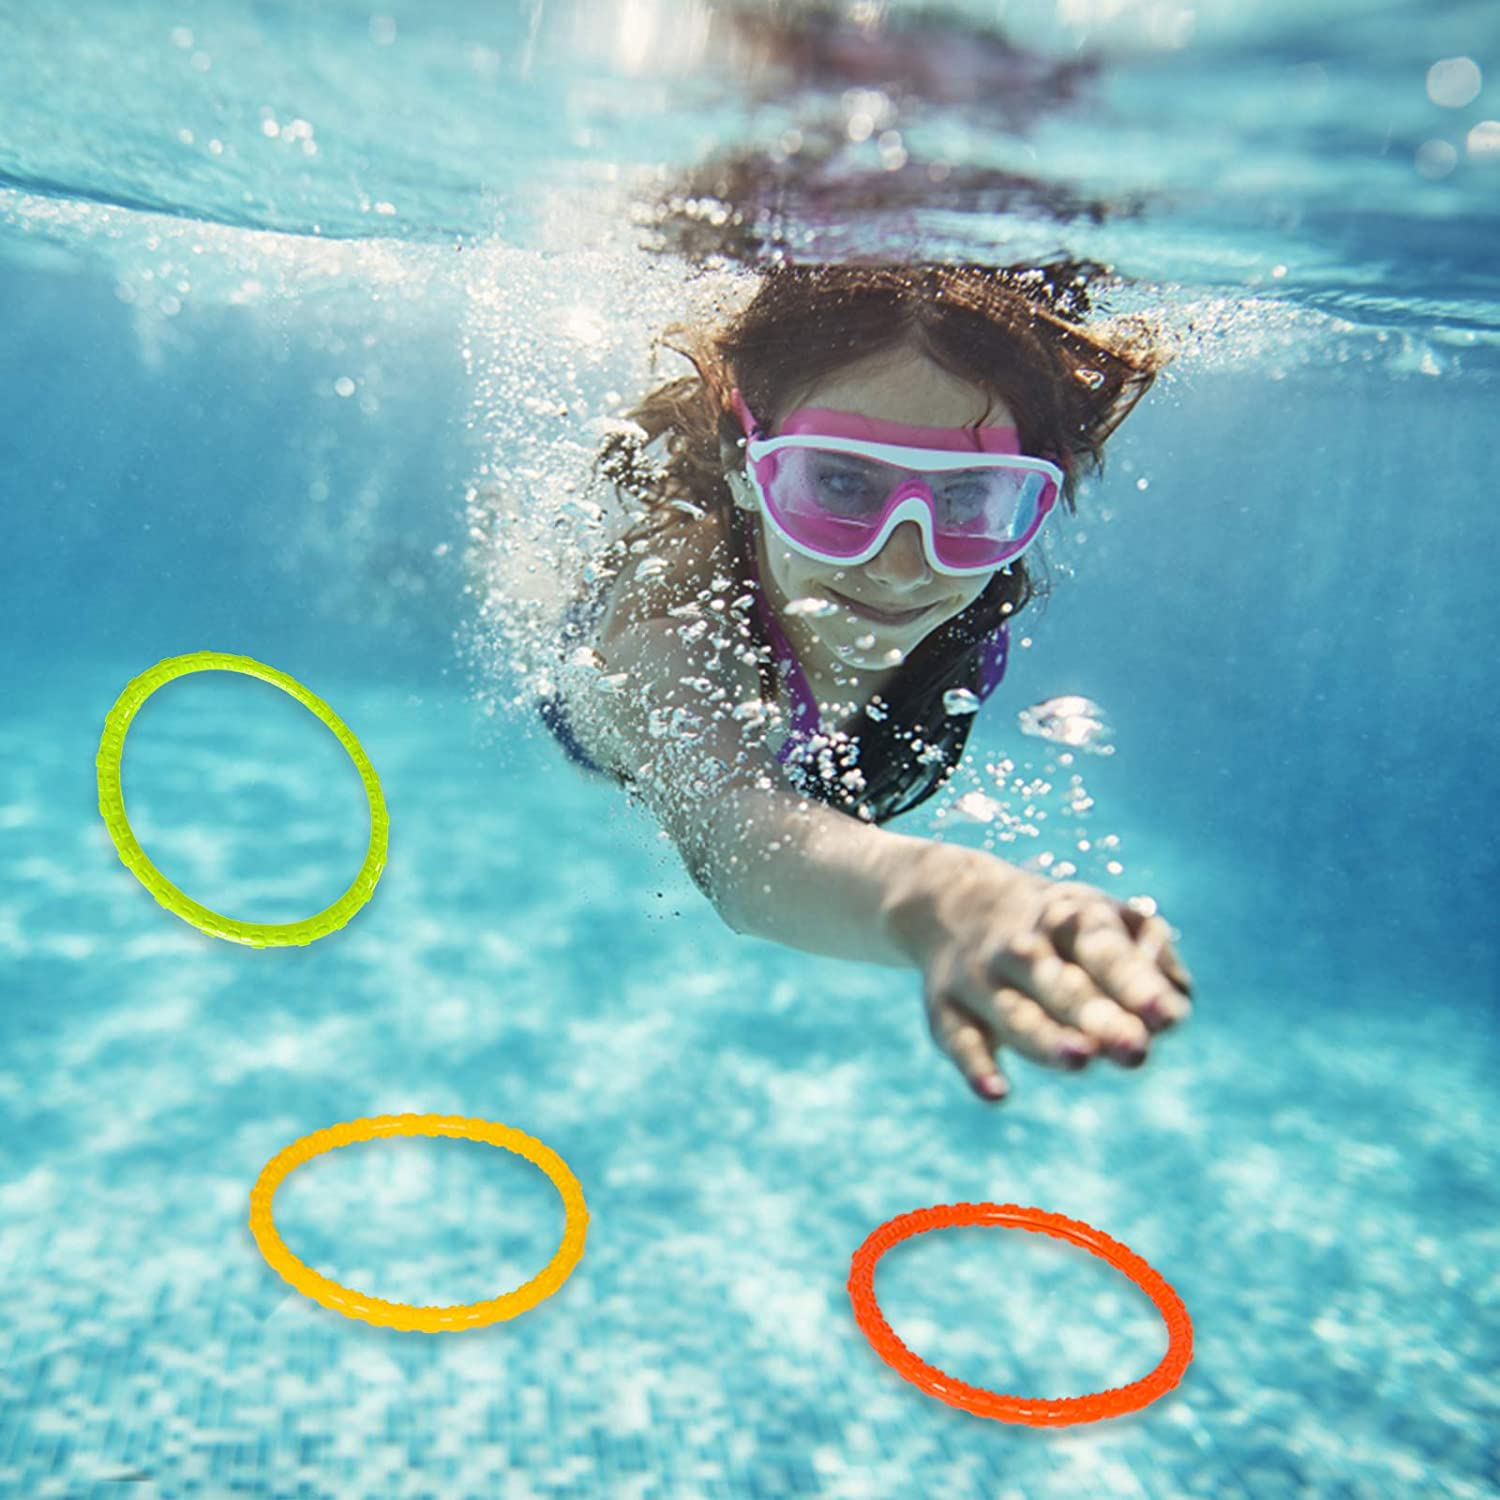 YHmall 6 Pack Pool Diving Toys Water Swimming Pool Diving Rings Toys for Kids Colorful Easy to Find and Grab Blue